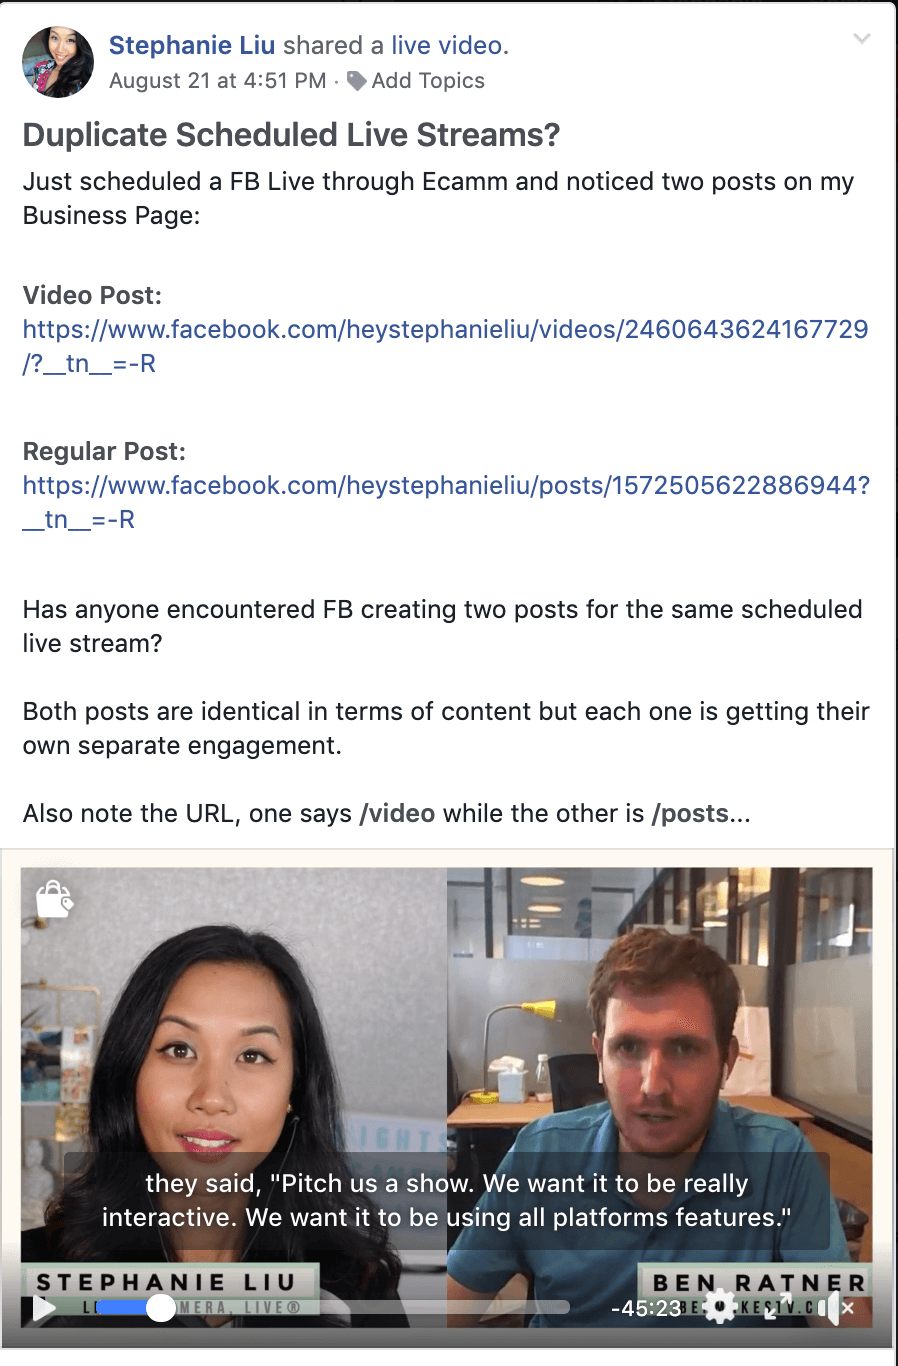 Duplicate Scheduled Facebook Live Posts.png